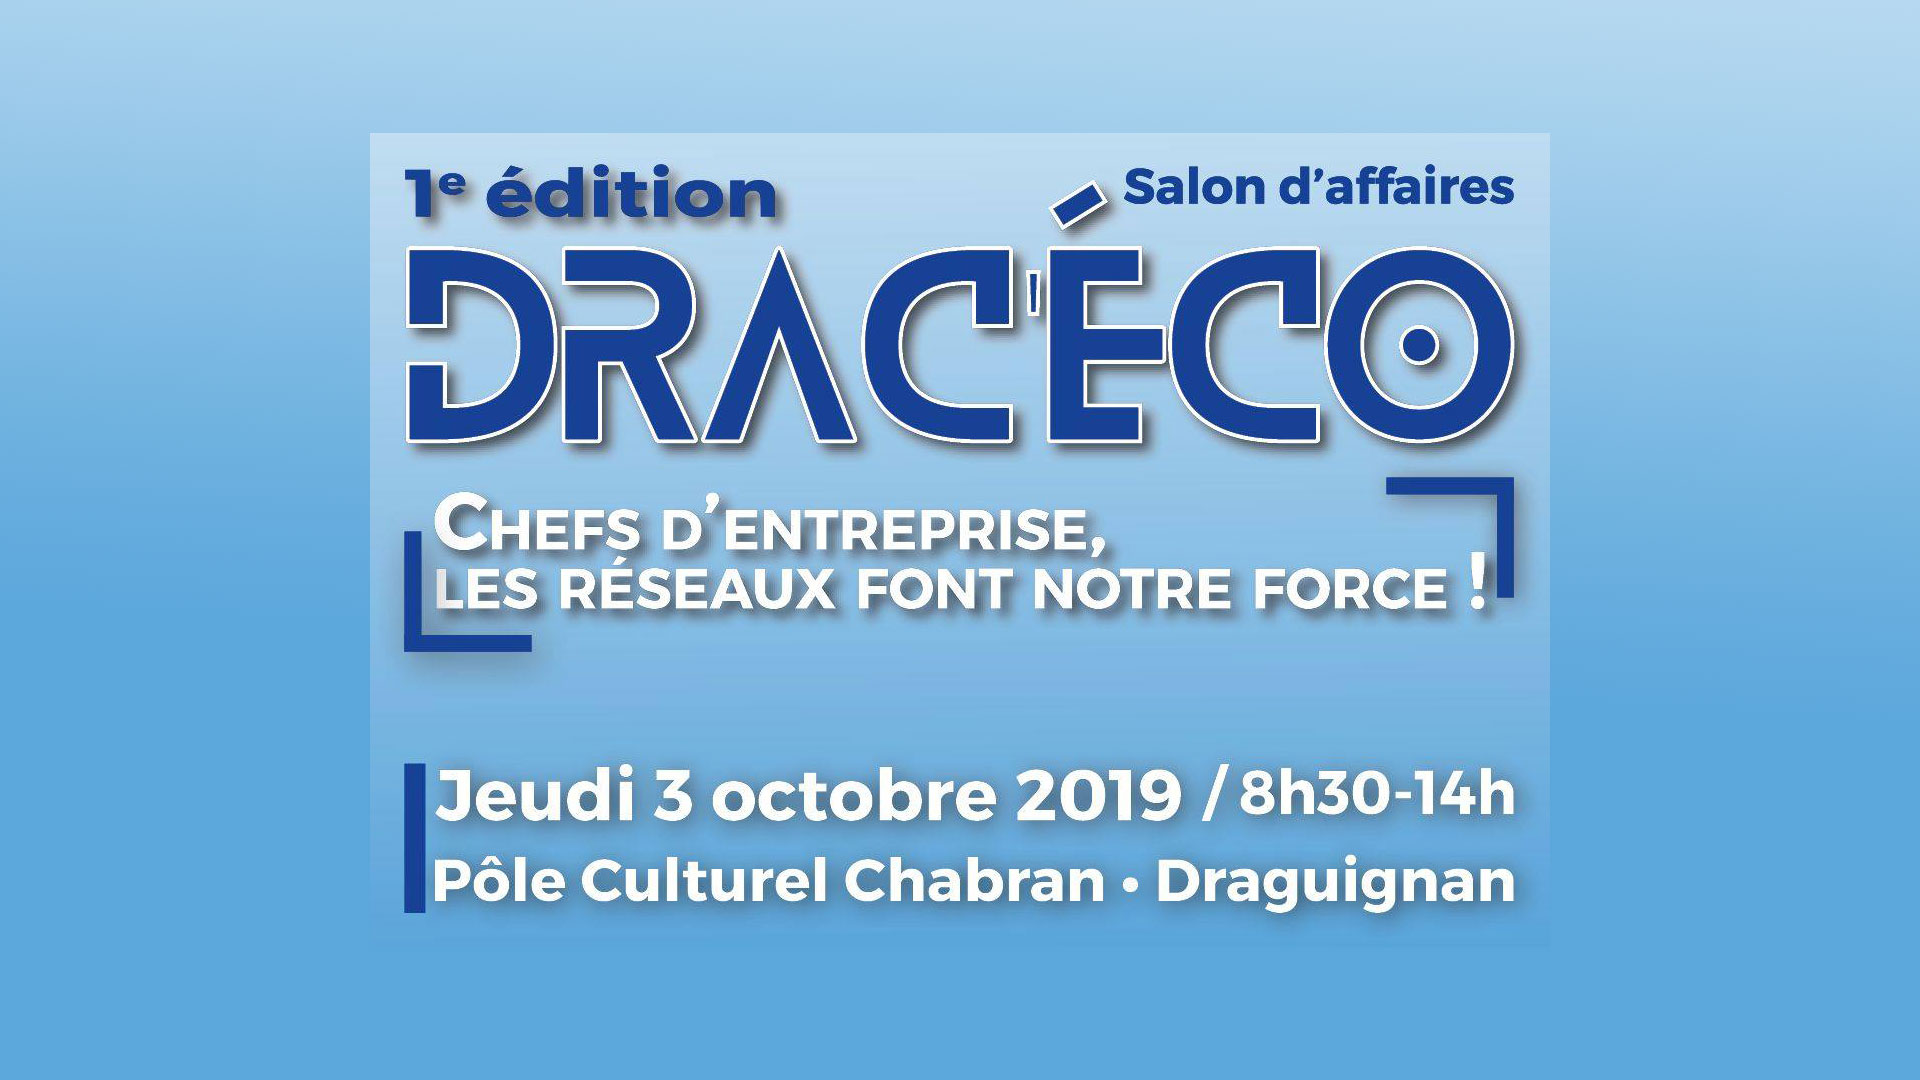 Que faire au salon d'affaires Drac'Éco à Draguignan ?